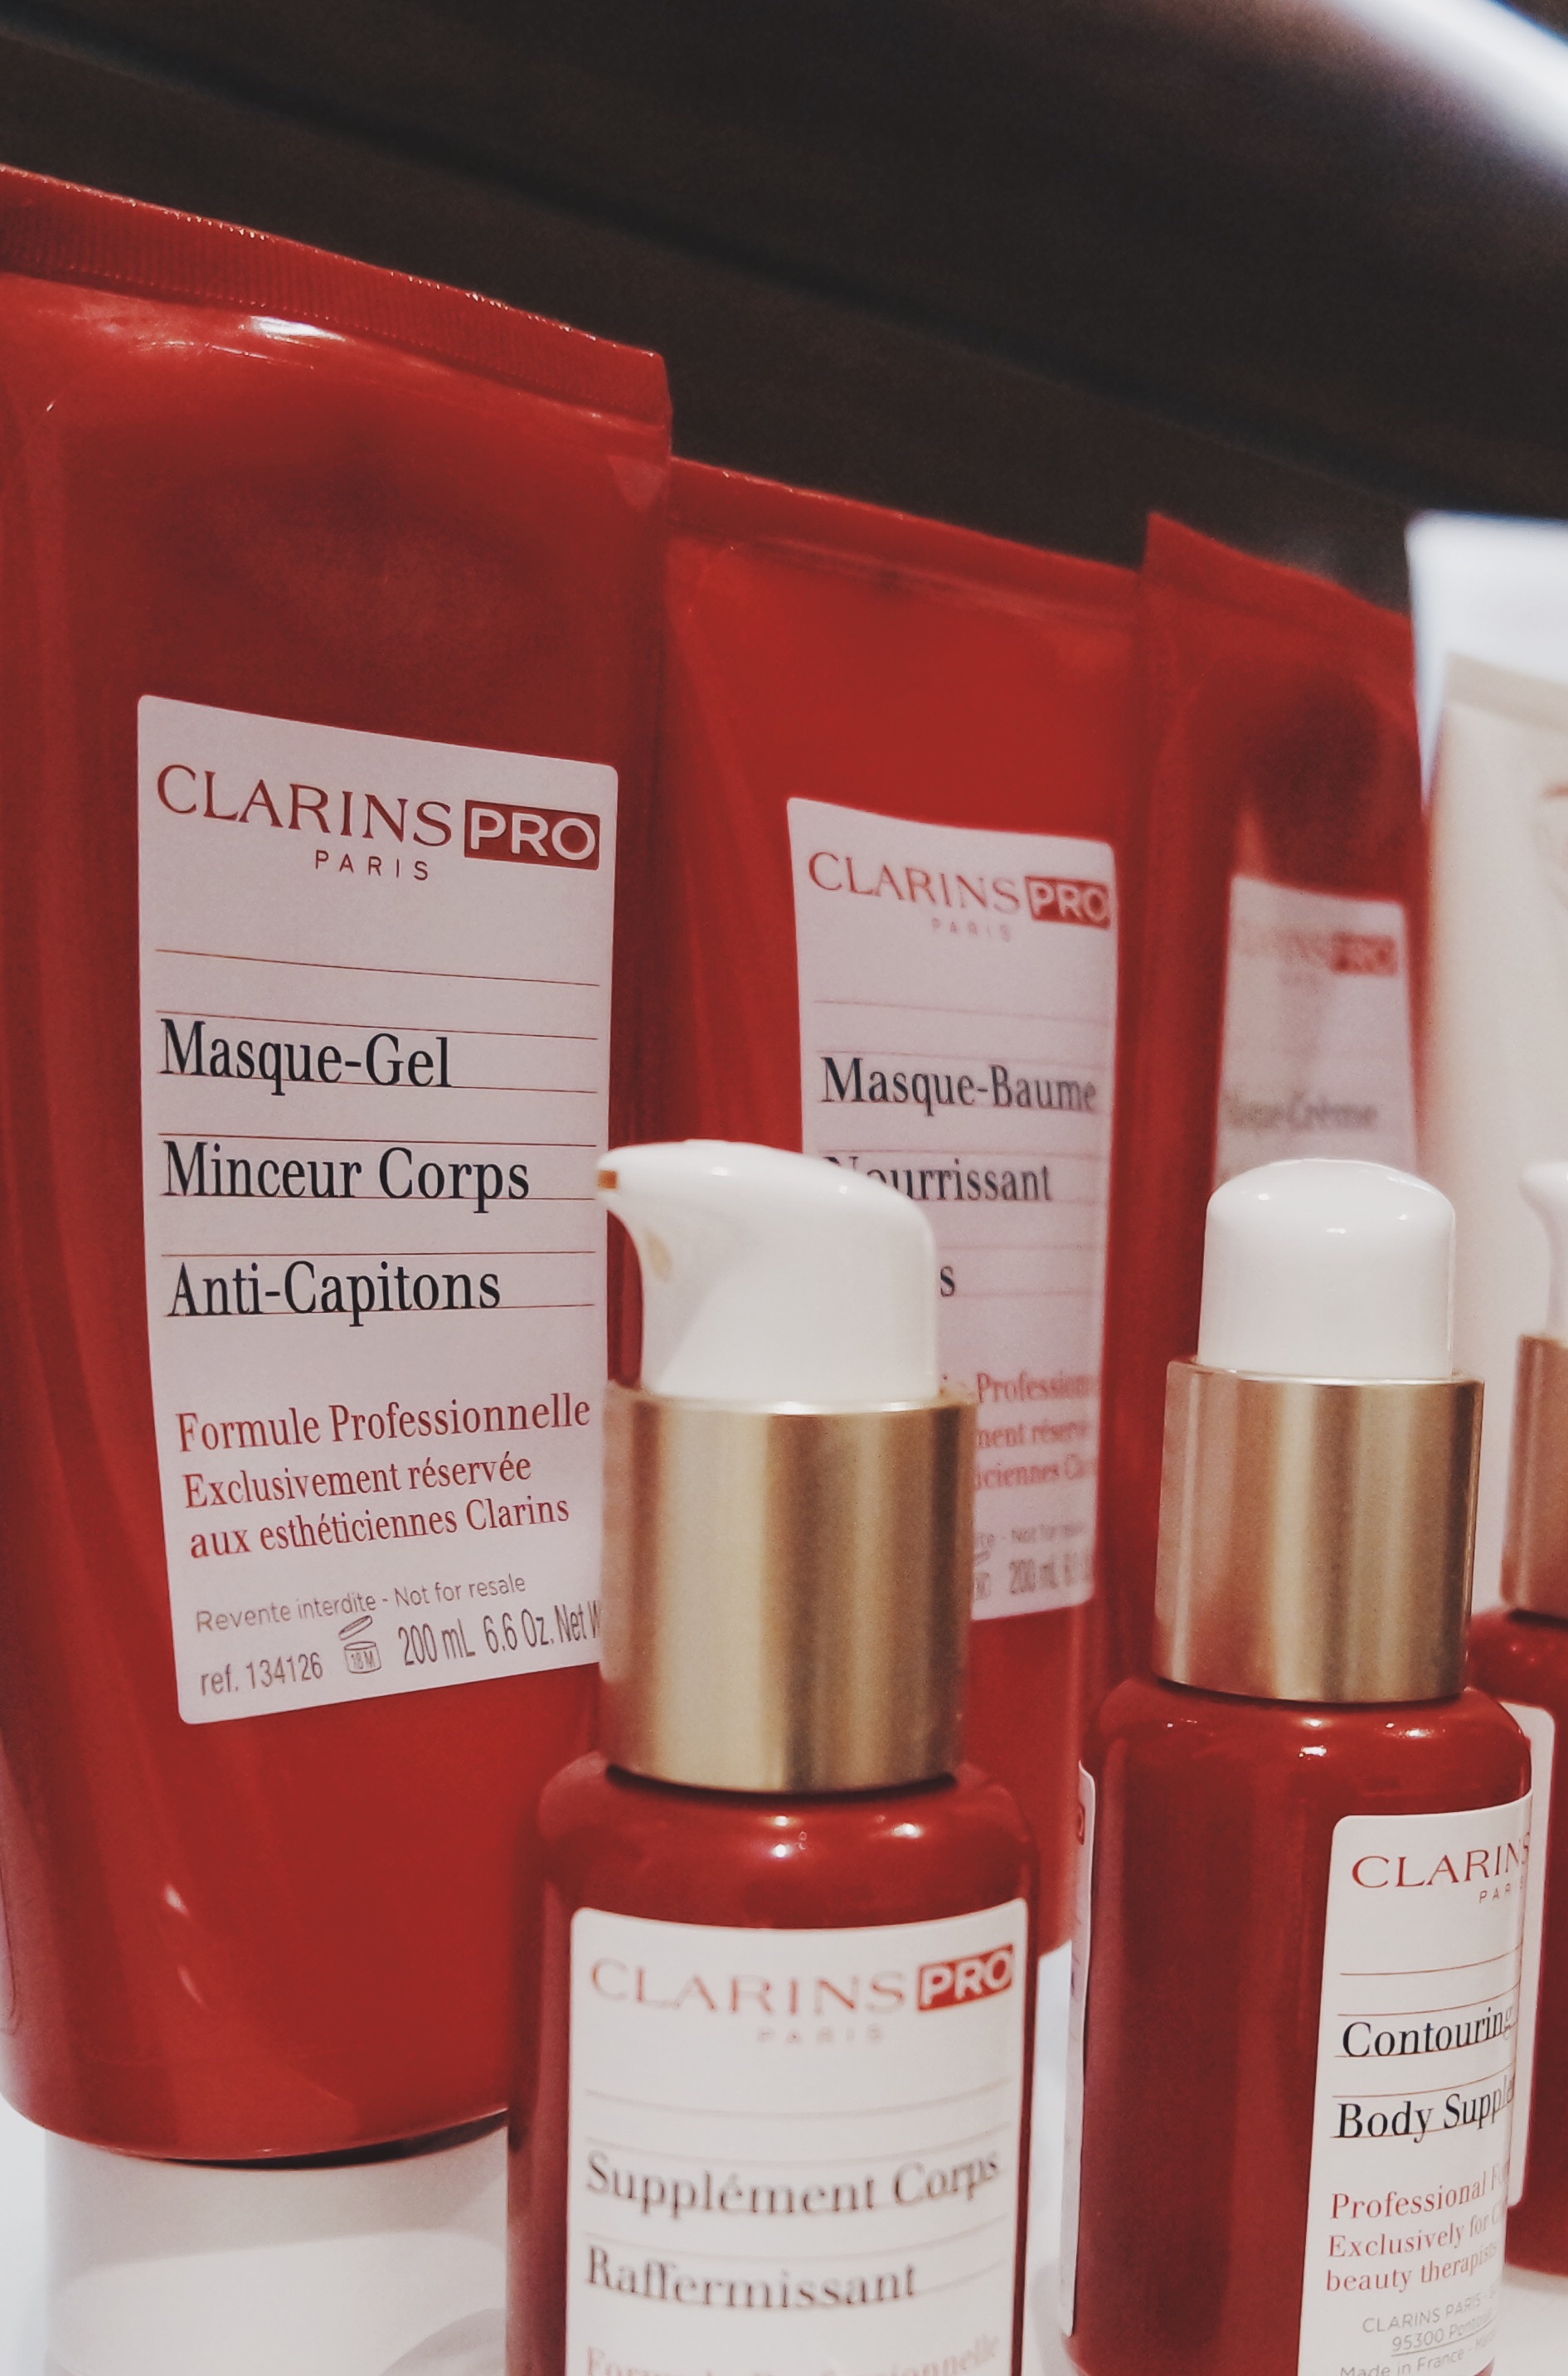 THATGRACEIRL | THE BEAUTY EXPERIENCE : CLARINS